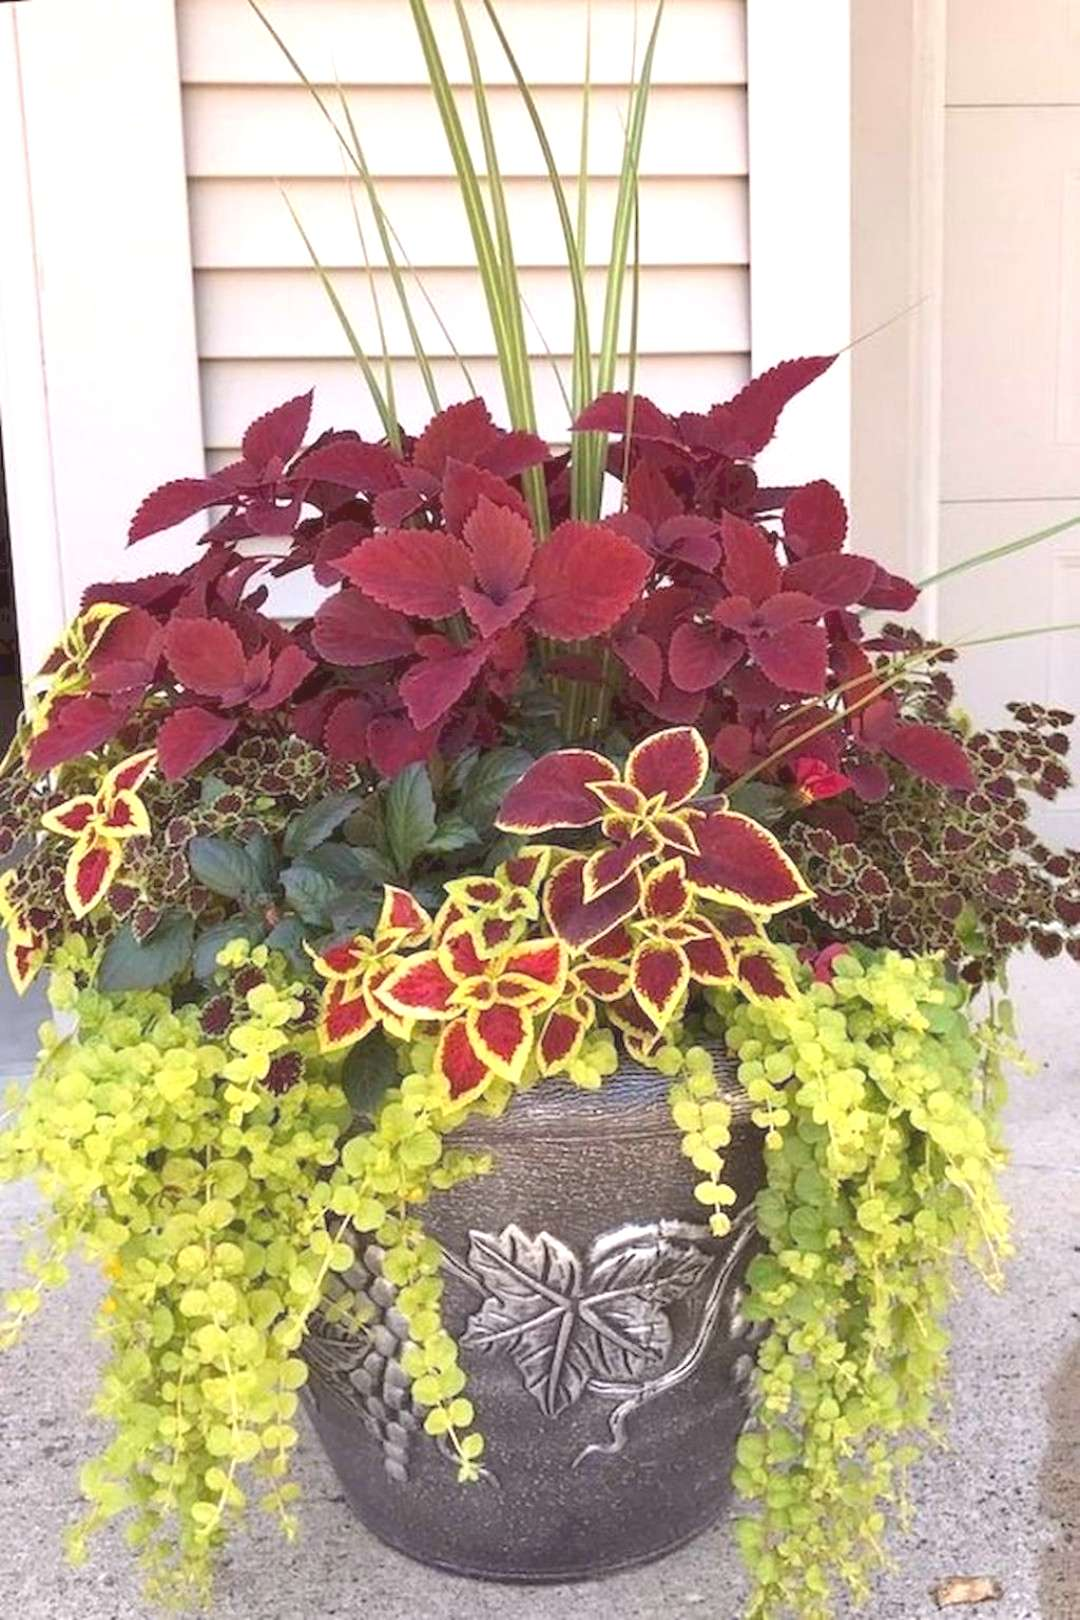 60 Easy and Fresh Spring Container Garden Flowers Ideas for Beginner -  Adorable 60 Easy and Fresh